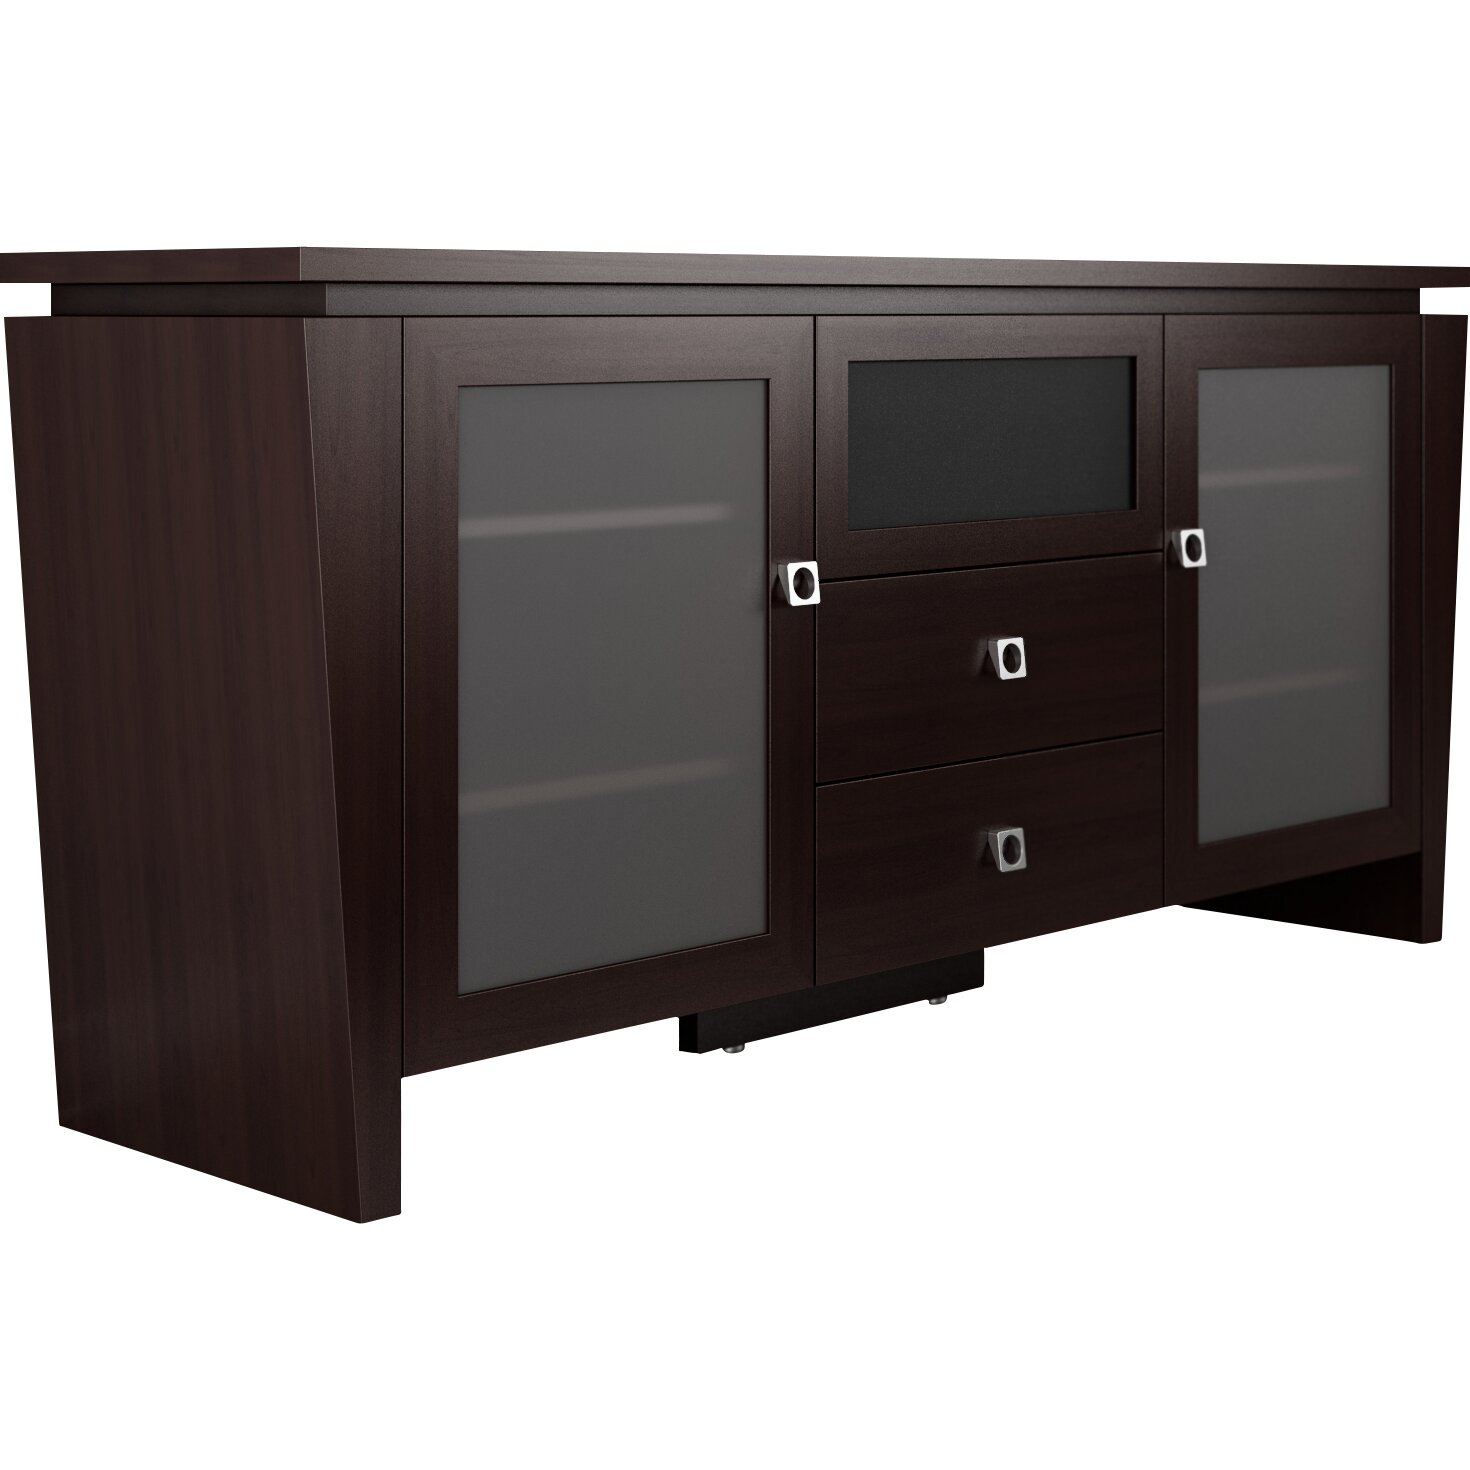 Furnitech Classic Modern Tv Stand Reviews Wayfair